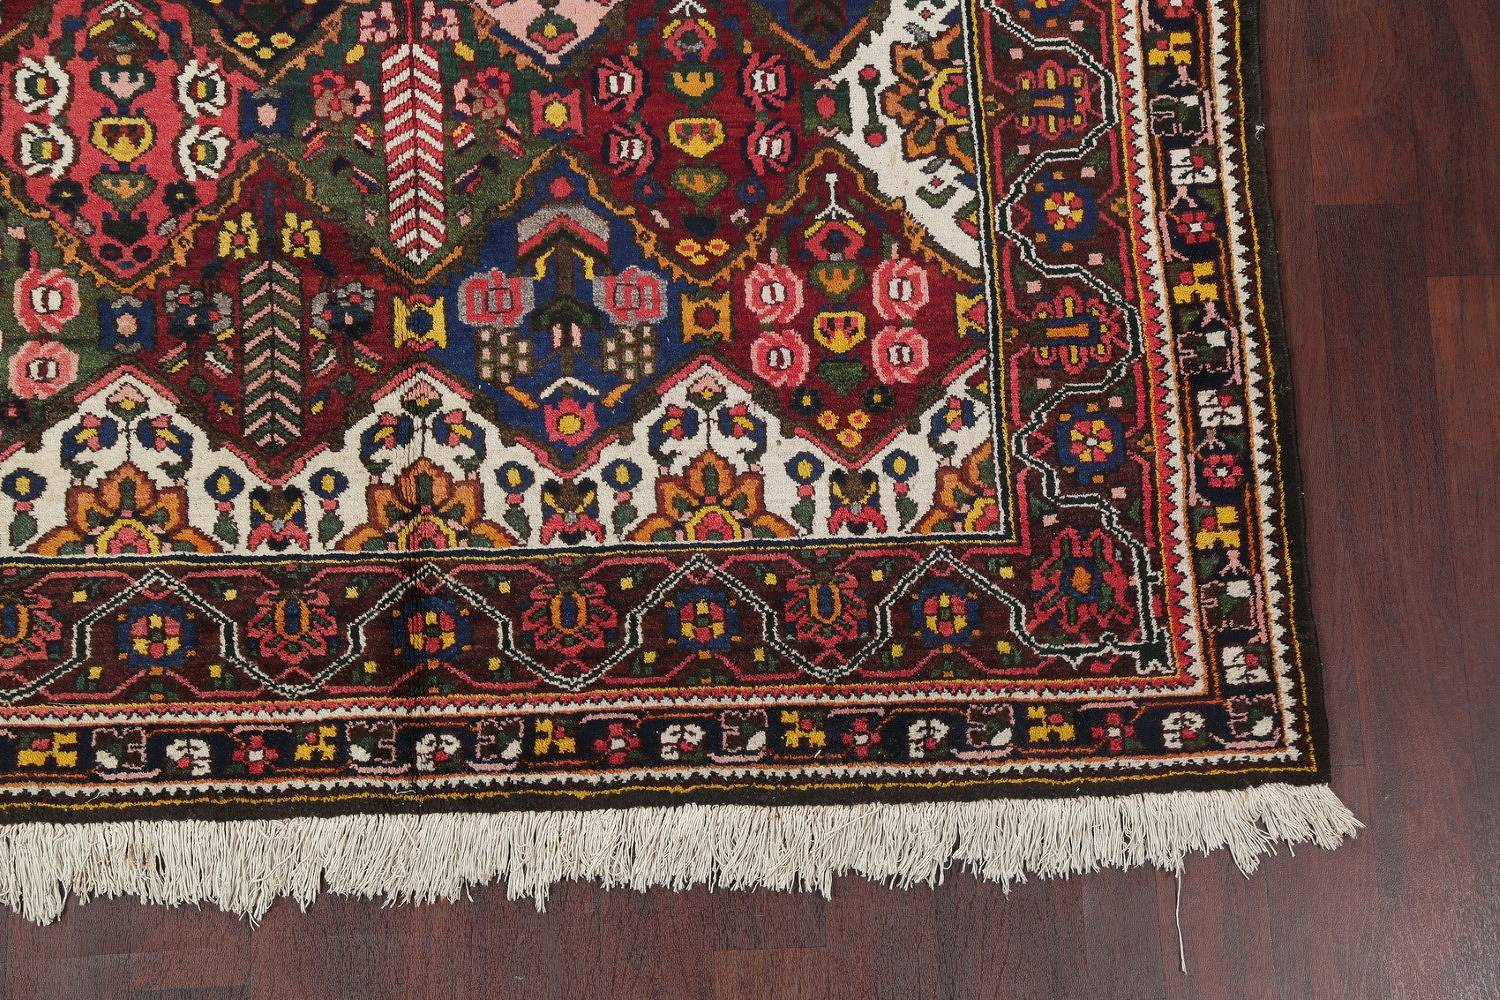 Antique Vegetable Dye Bakhtiari Persian Hand-Knotted Area Rug 7x12 image 6